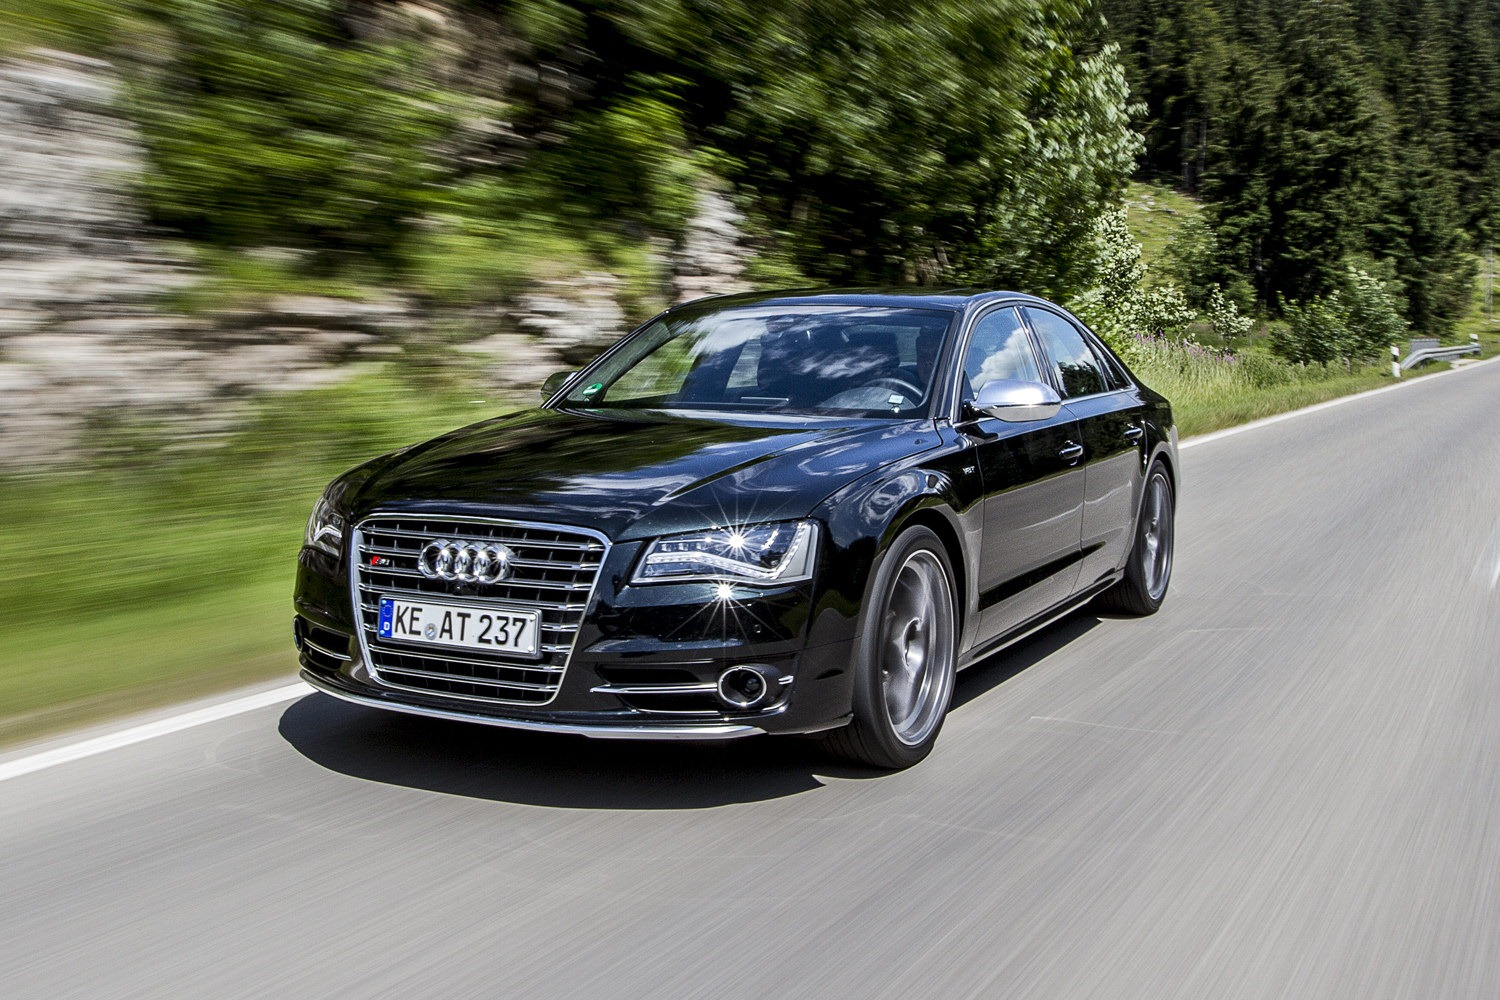 ABT Sportsline squeezes 612HP from Audi S8